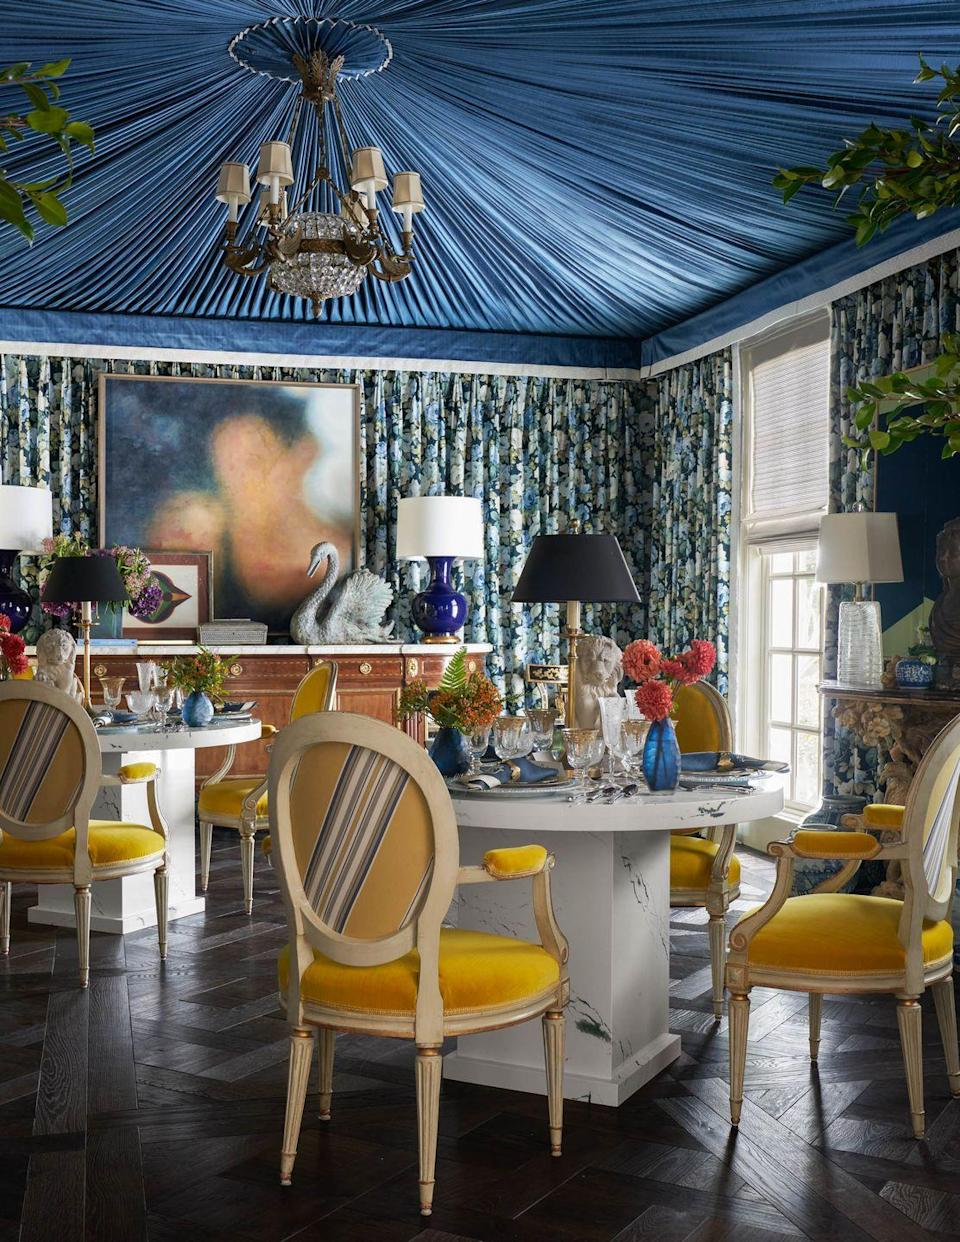 """<p>Talk about drama: In his """"Tent for New Beginnings"""" dining room, ELLE DECOR A-List designer <a href=""""https://coreydamenjenkins.com/"""" rel=""""nofollow noopener"""" target=""""_blank"""" data-ylk=""""slk:Corey Damen Jenkins"""" class=""""link rapid-noclick-resp"""">Corey Damen Jenkins</a> incorporated rich textures and exciting jewel tones to evoke the spectacle of a Cirque du Soleil performance. The tented ceiling is of a fabric hand-crafted by <a href=""""https://www.frenchfinish.com/"""" rel=""""nofollow noopener"""" target=""""_blank"""" data-ylk=""""slk:French Finish"""" class=""""link rapid-noclick-resp"""">French Finish</a>, while the wall's fabric is from the <a href=""""https://www.elledecor.com/design-decorate/a37594880/martyn-lawrence-bullard-the-shade-store/"""" rel=""""nofollow noopener"""" target=""""_blank"""" data-ylk=""""slk:Shade Store"""" class=""""link rapid-noclick-resp"""">Shade Store</a>. Antique Louis XVI chairs upholstered in bold yellow velvet surround quartz dining tables. The bold <a href=""""https://www.schotten-hansen.com/en/"""" rel=""""nofollow noopener"""" target=""""_blank"""" data-ylk=""""slk:Schotten & Hansen"""" class=""""link rapid-noclick-resp"""">Schotten & Hansen</a> parquet flooring was created in collaboration with Deven Gadula of <a href=""""https://www.first-last-always.com/company/home"""" rel=""""nofollow noopener"""" target=""""_blank"""" data-ylk=""""slk:First, Last & Always"""" class=""""link rapid-noclick-resp"""">First, Last & Always</a>.</p>"""